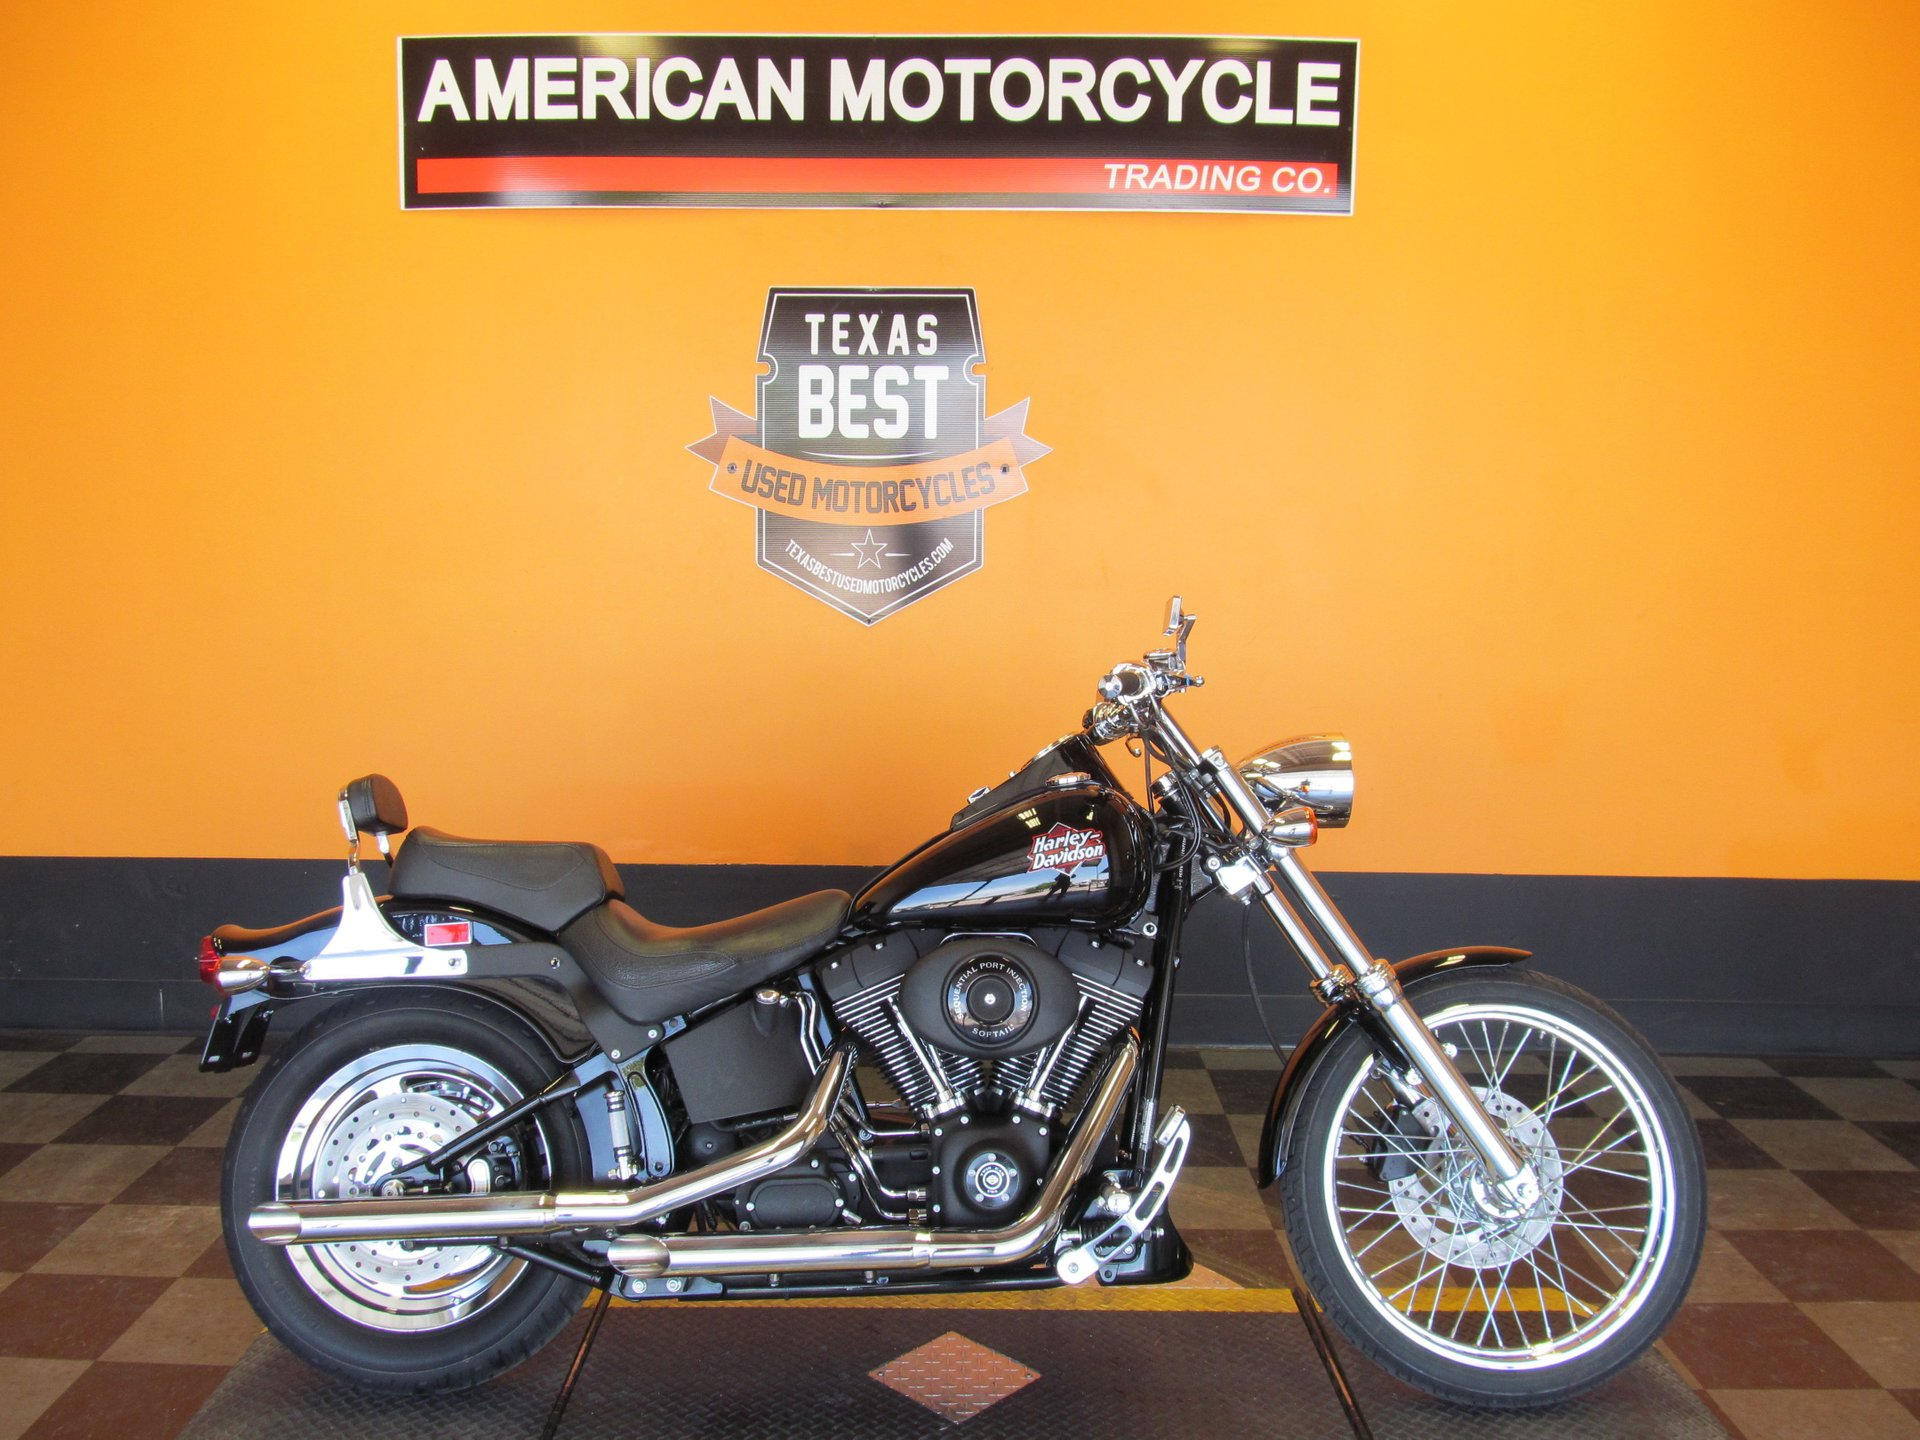 2001 harley davidson softail night train fxstbi